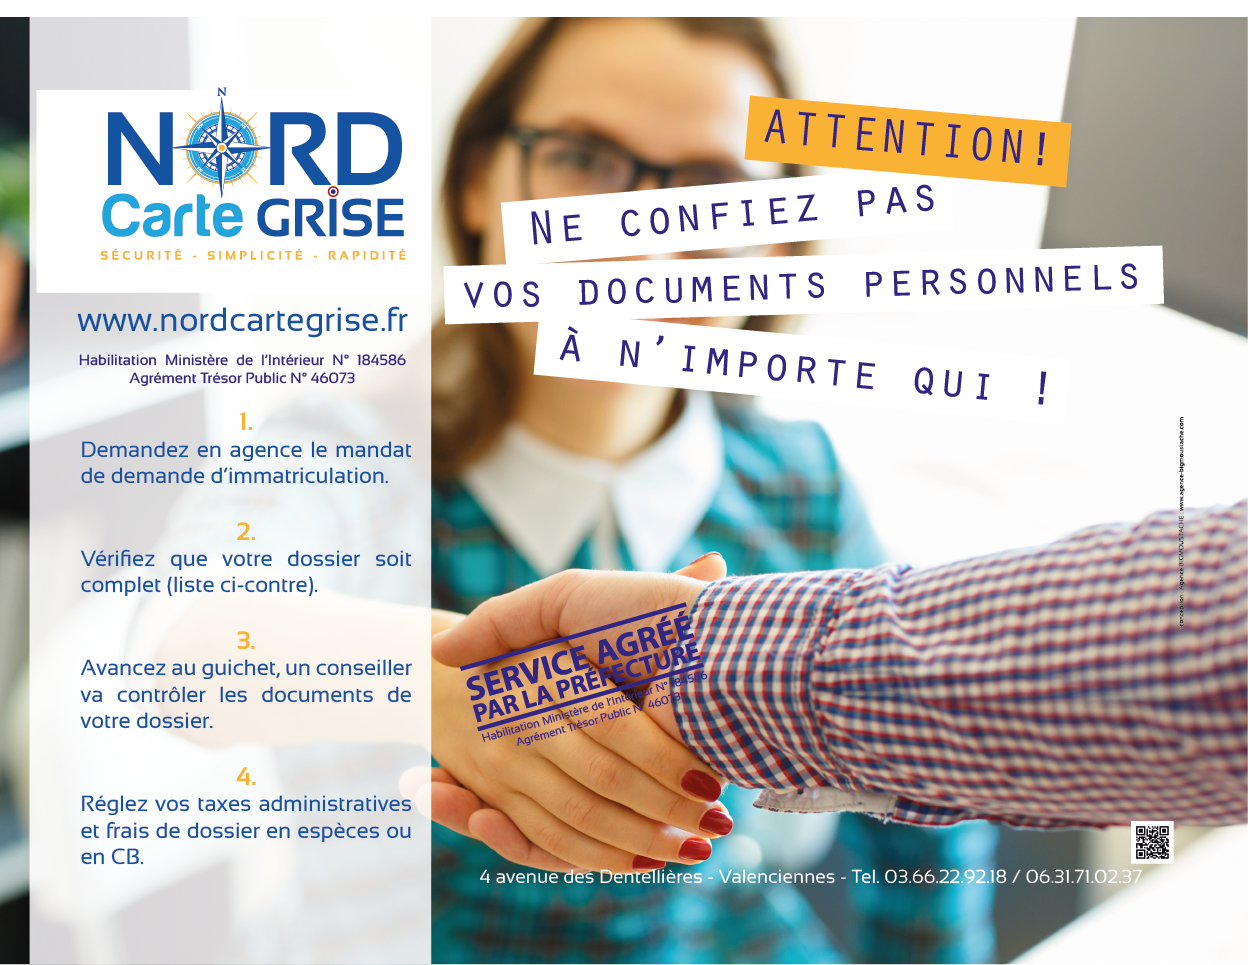 http://nordcartegrise.fr/wp-content/uploads/2018/02/affiche_A3-attention-PAYSAGE-WEB.png